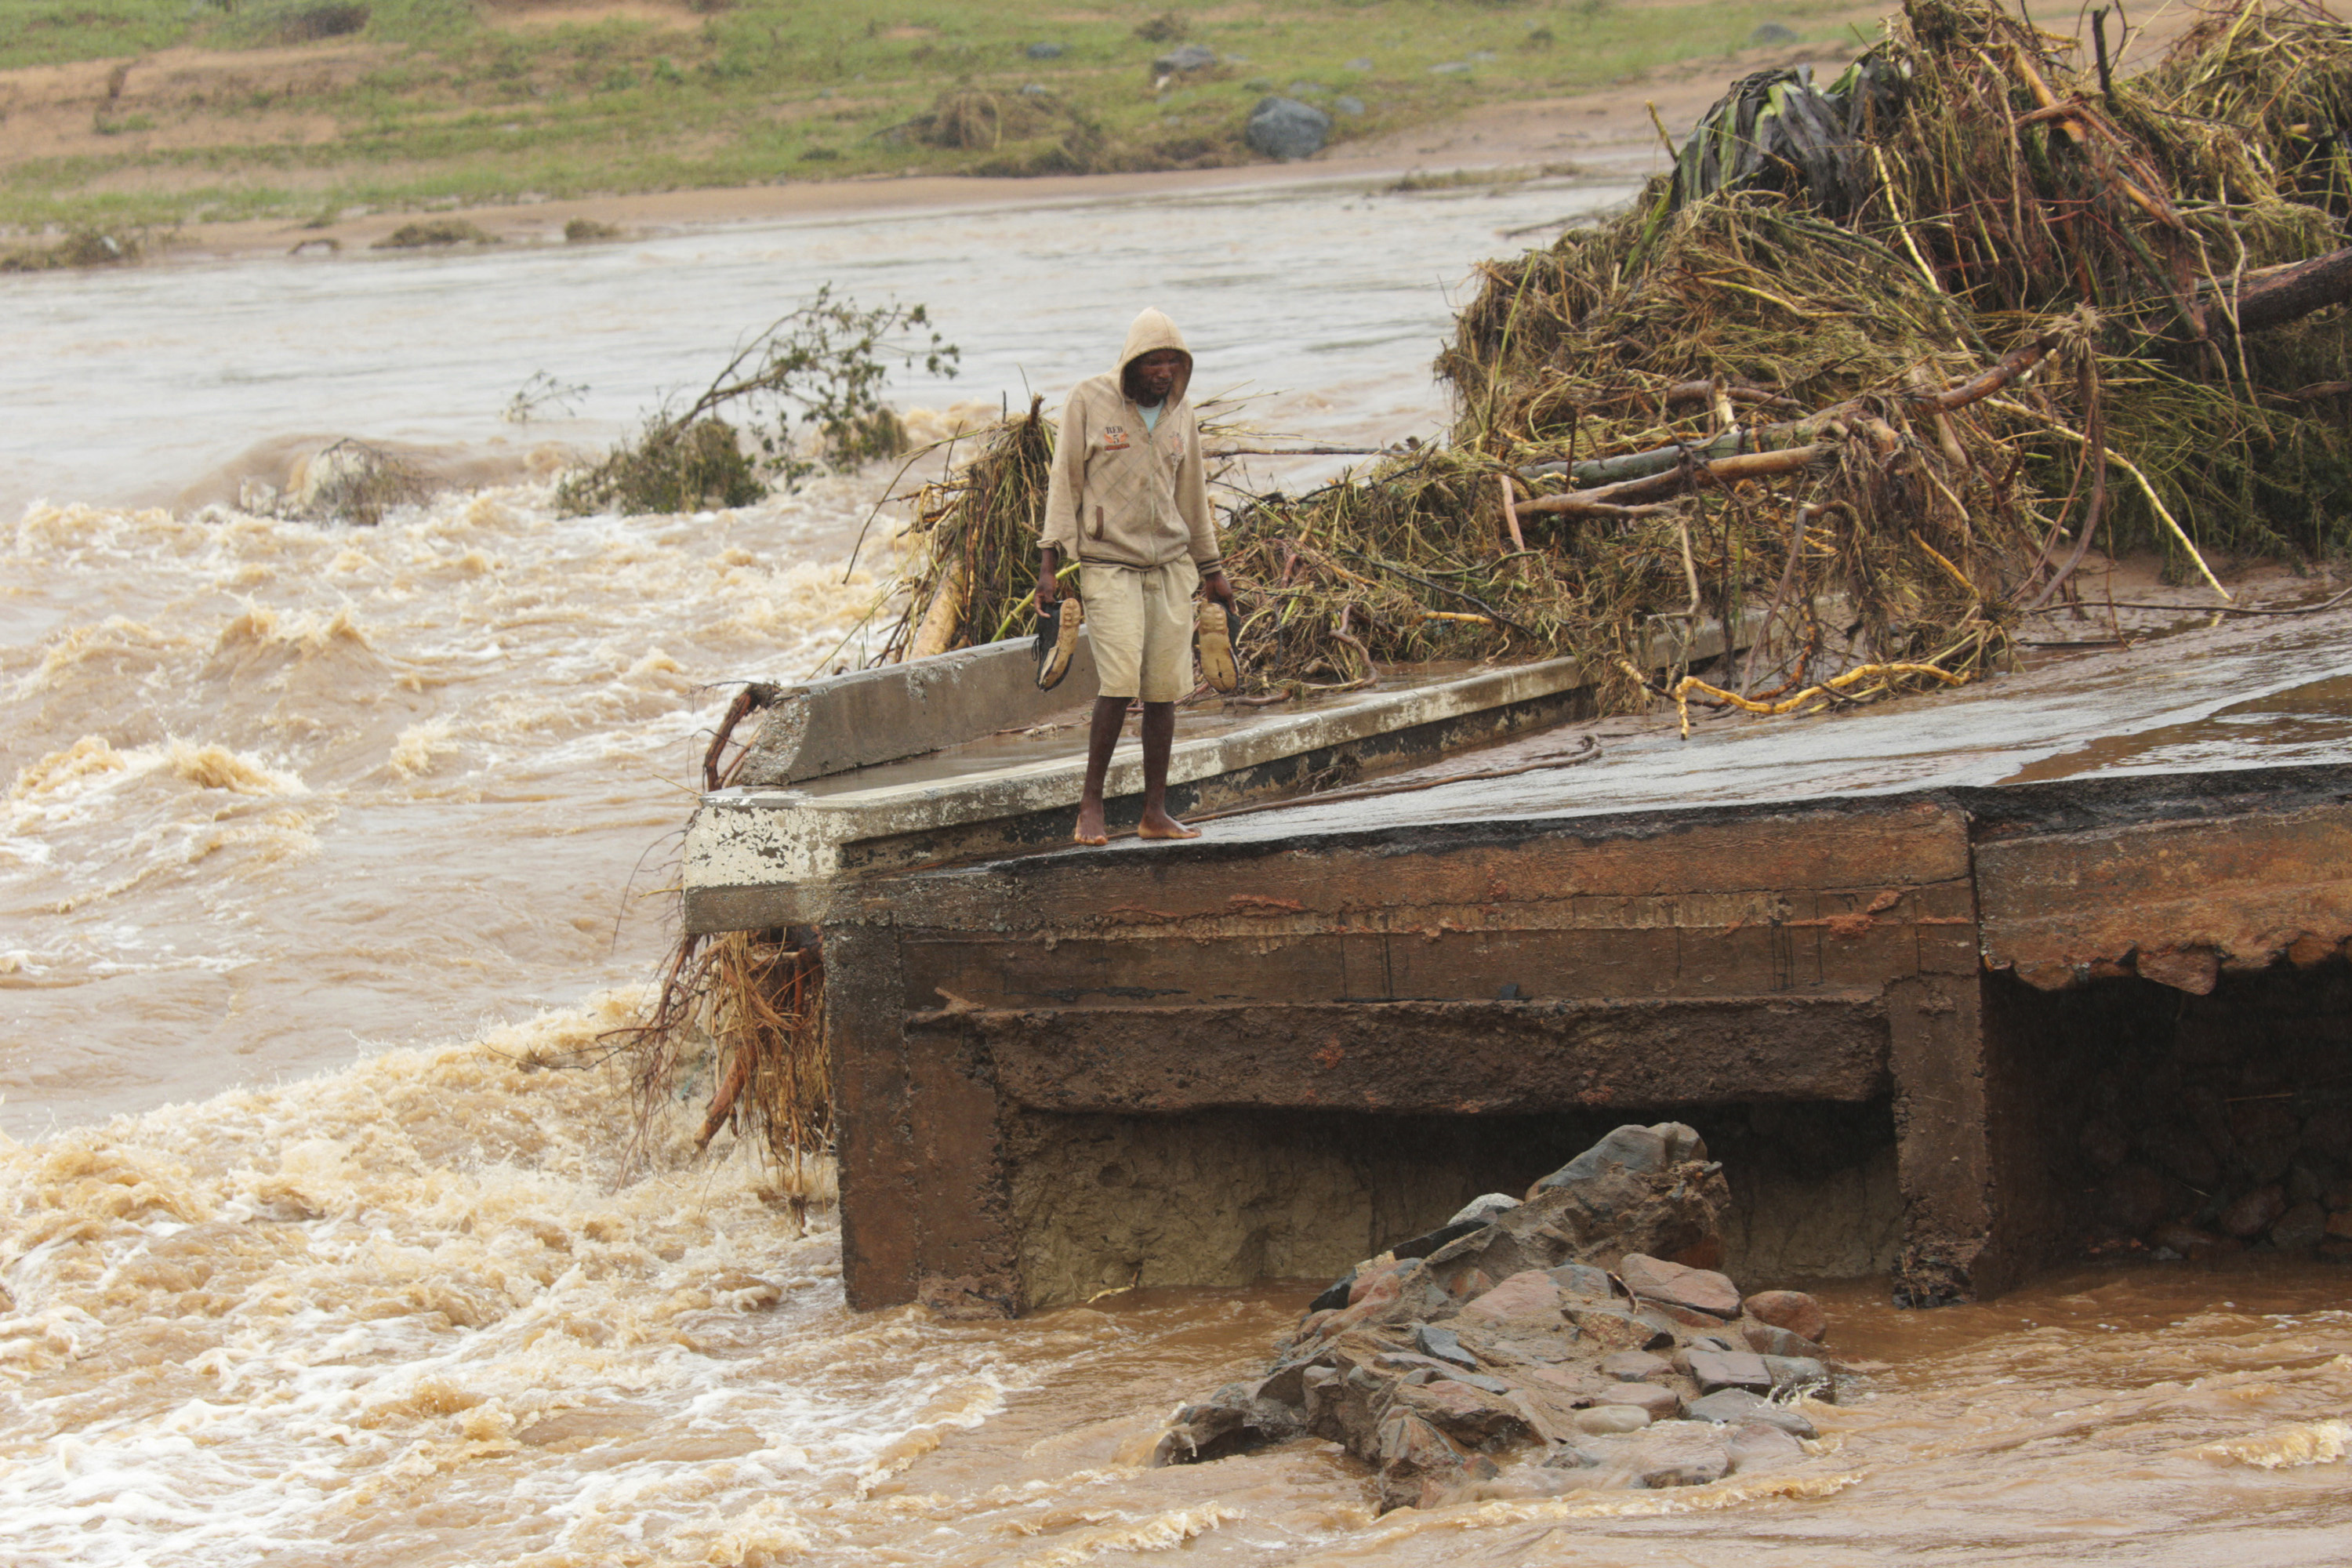 A man stands on the edge of a collapsed bridge in Chimanimani, about 600km south east of Harare, Zimbabwe